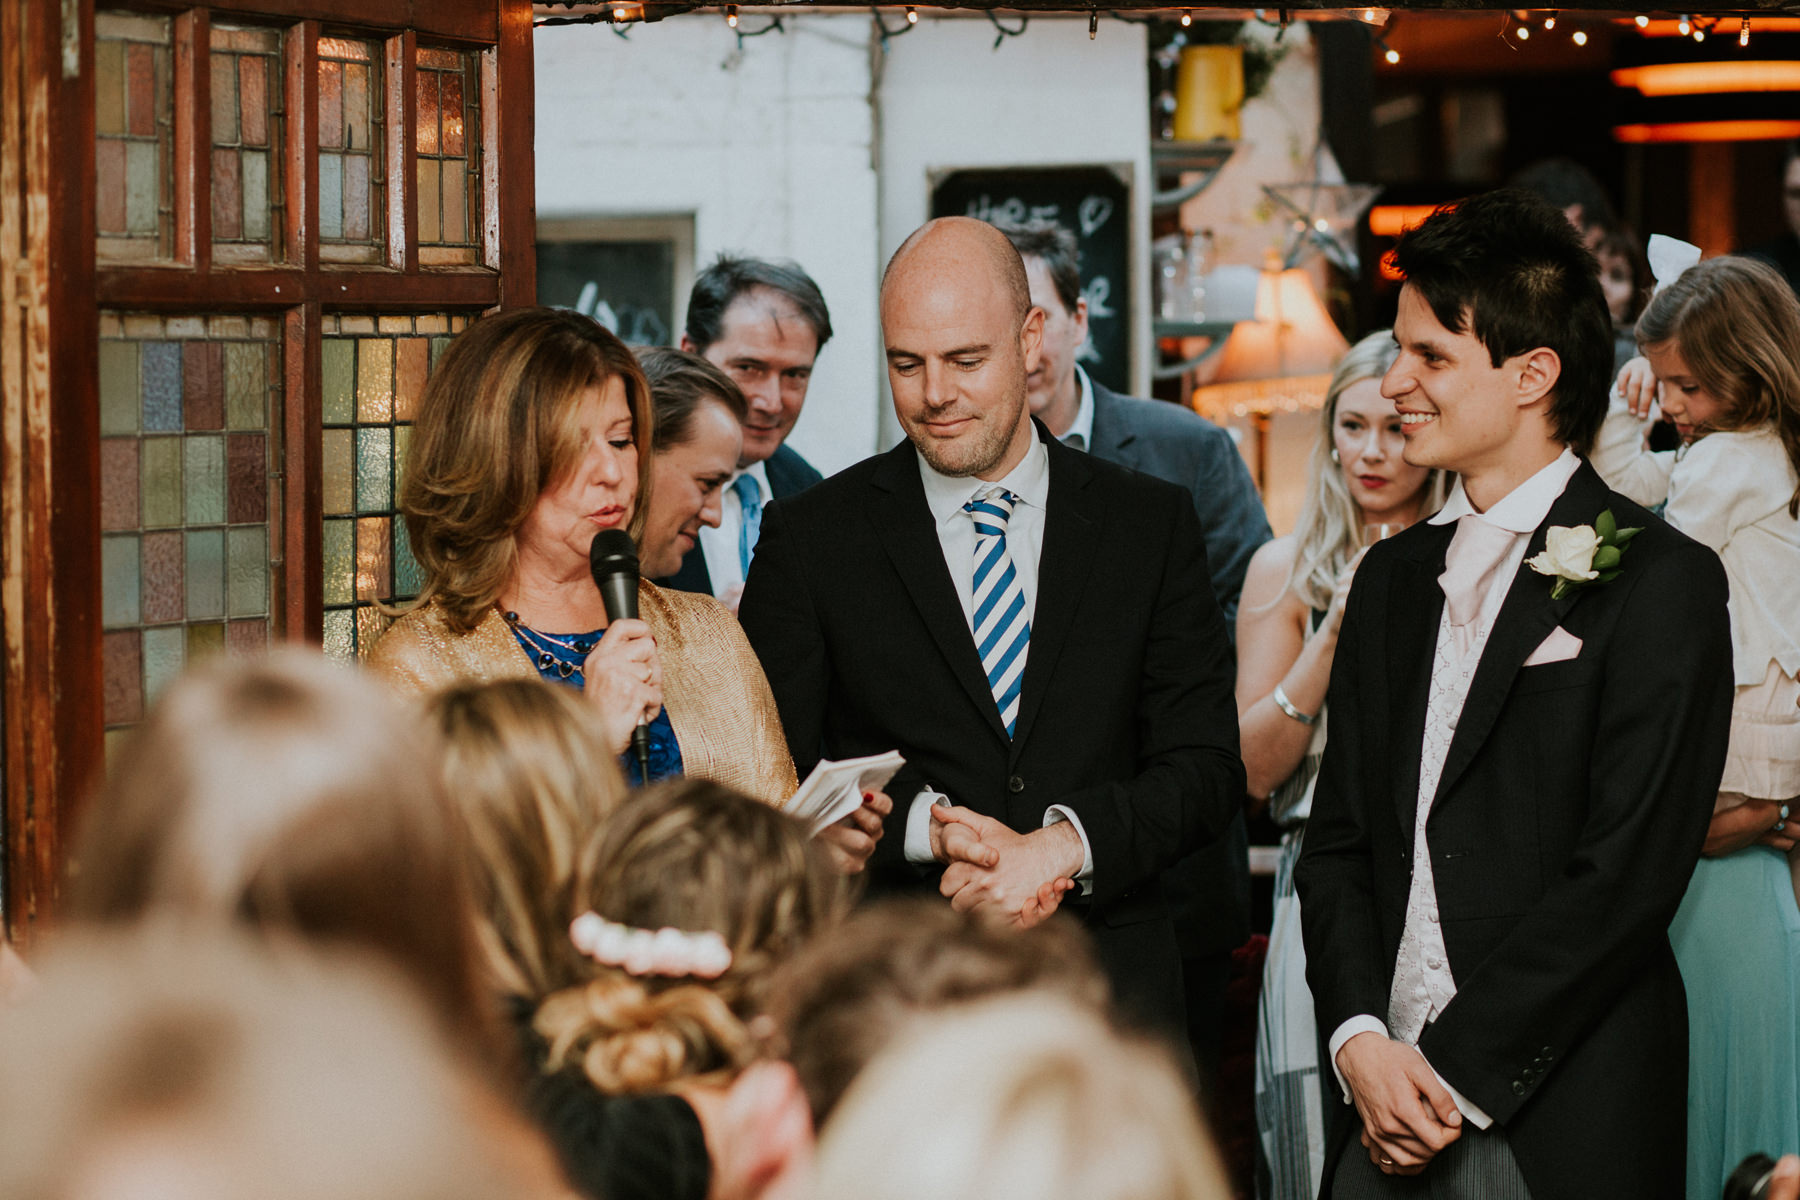 LD-694-London-reportage-photographer-Metro-Clapham-wedding-speeches.jpg